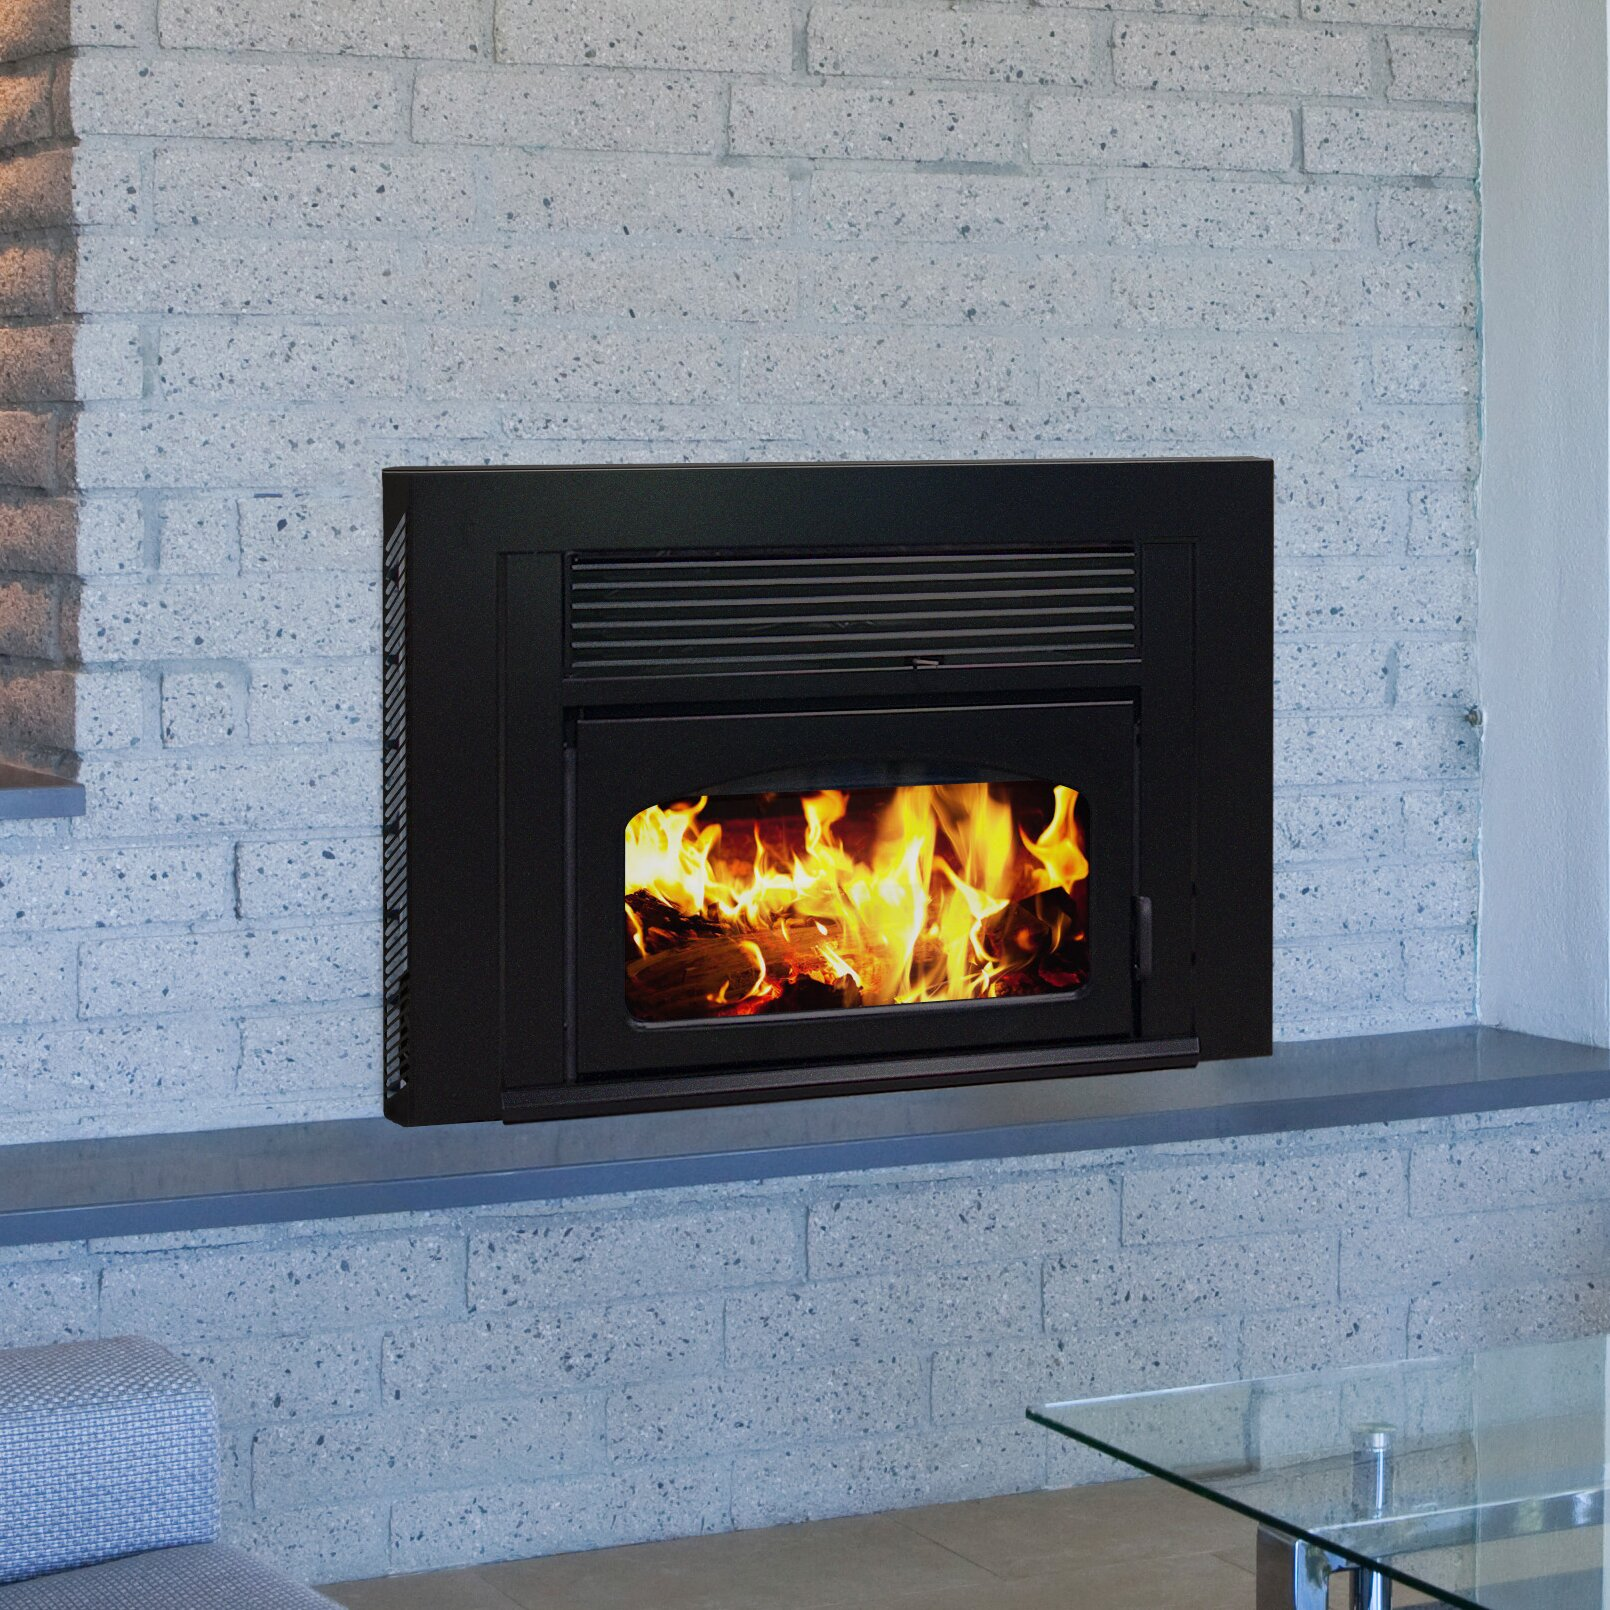 earth stove fireplace insert u2013 fireplace ideas gallery blog